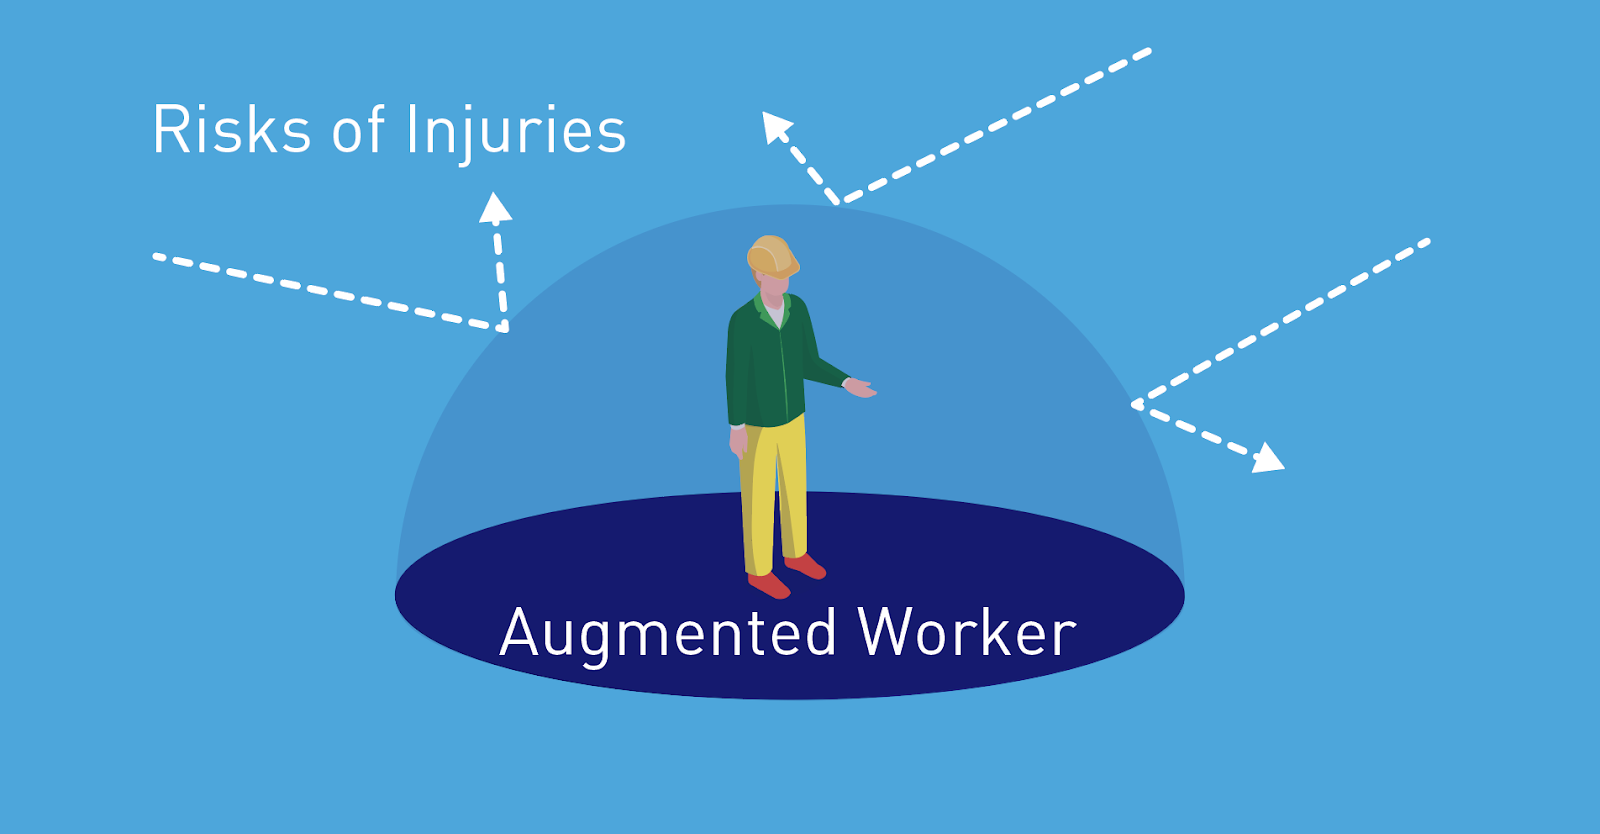 augmentative technologies make workers safer